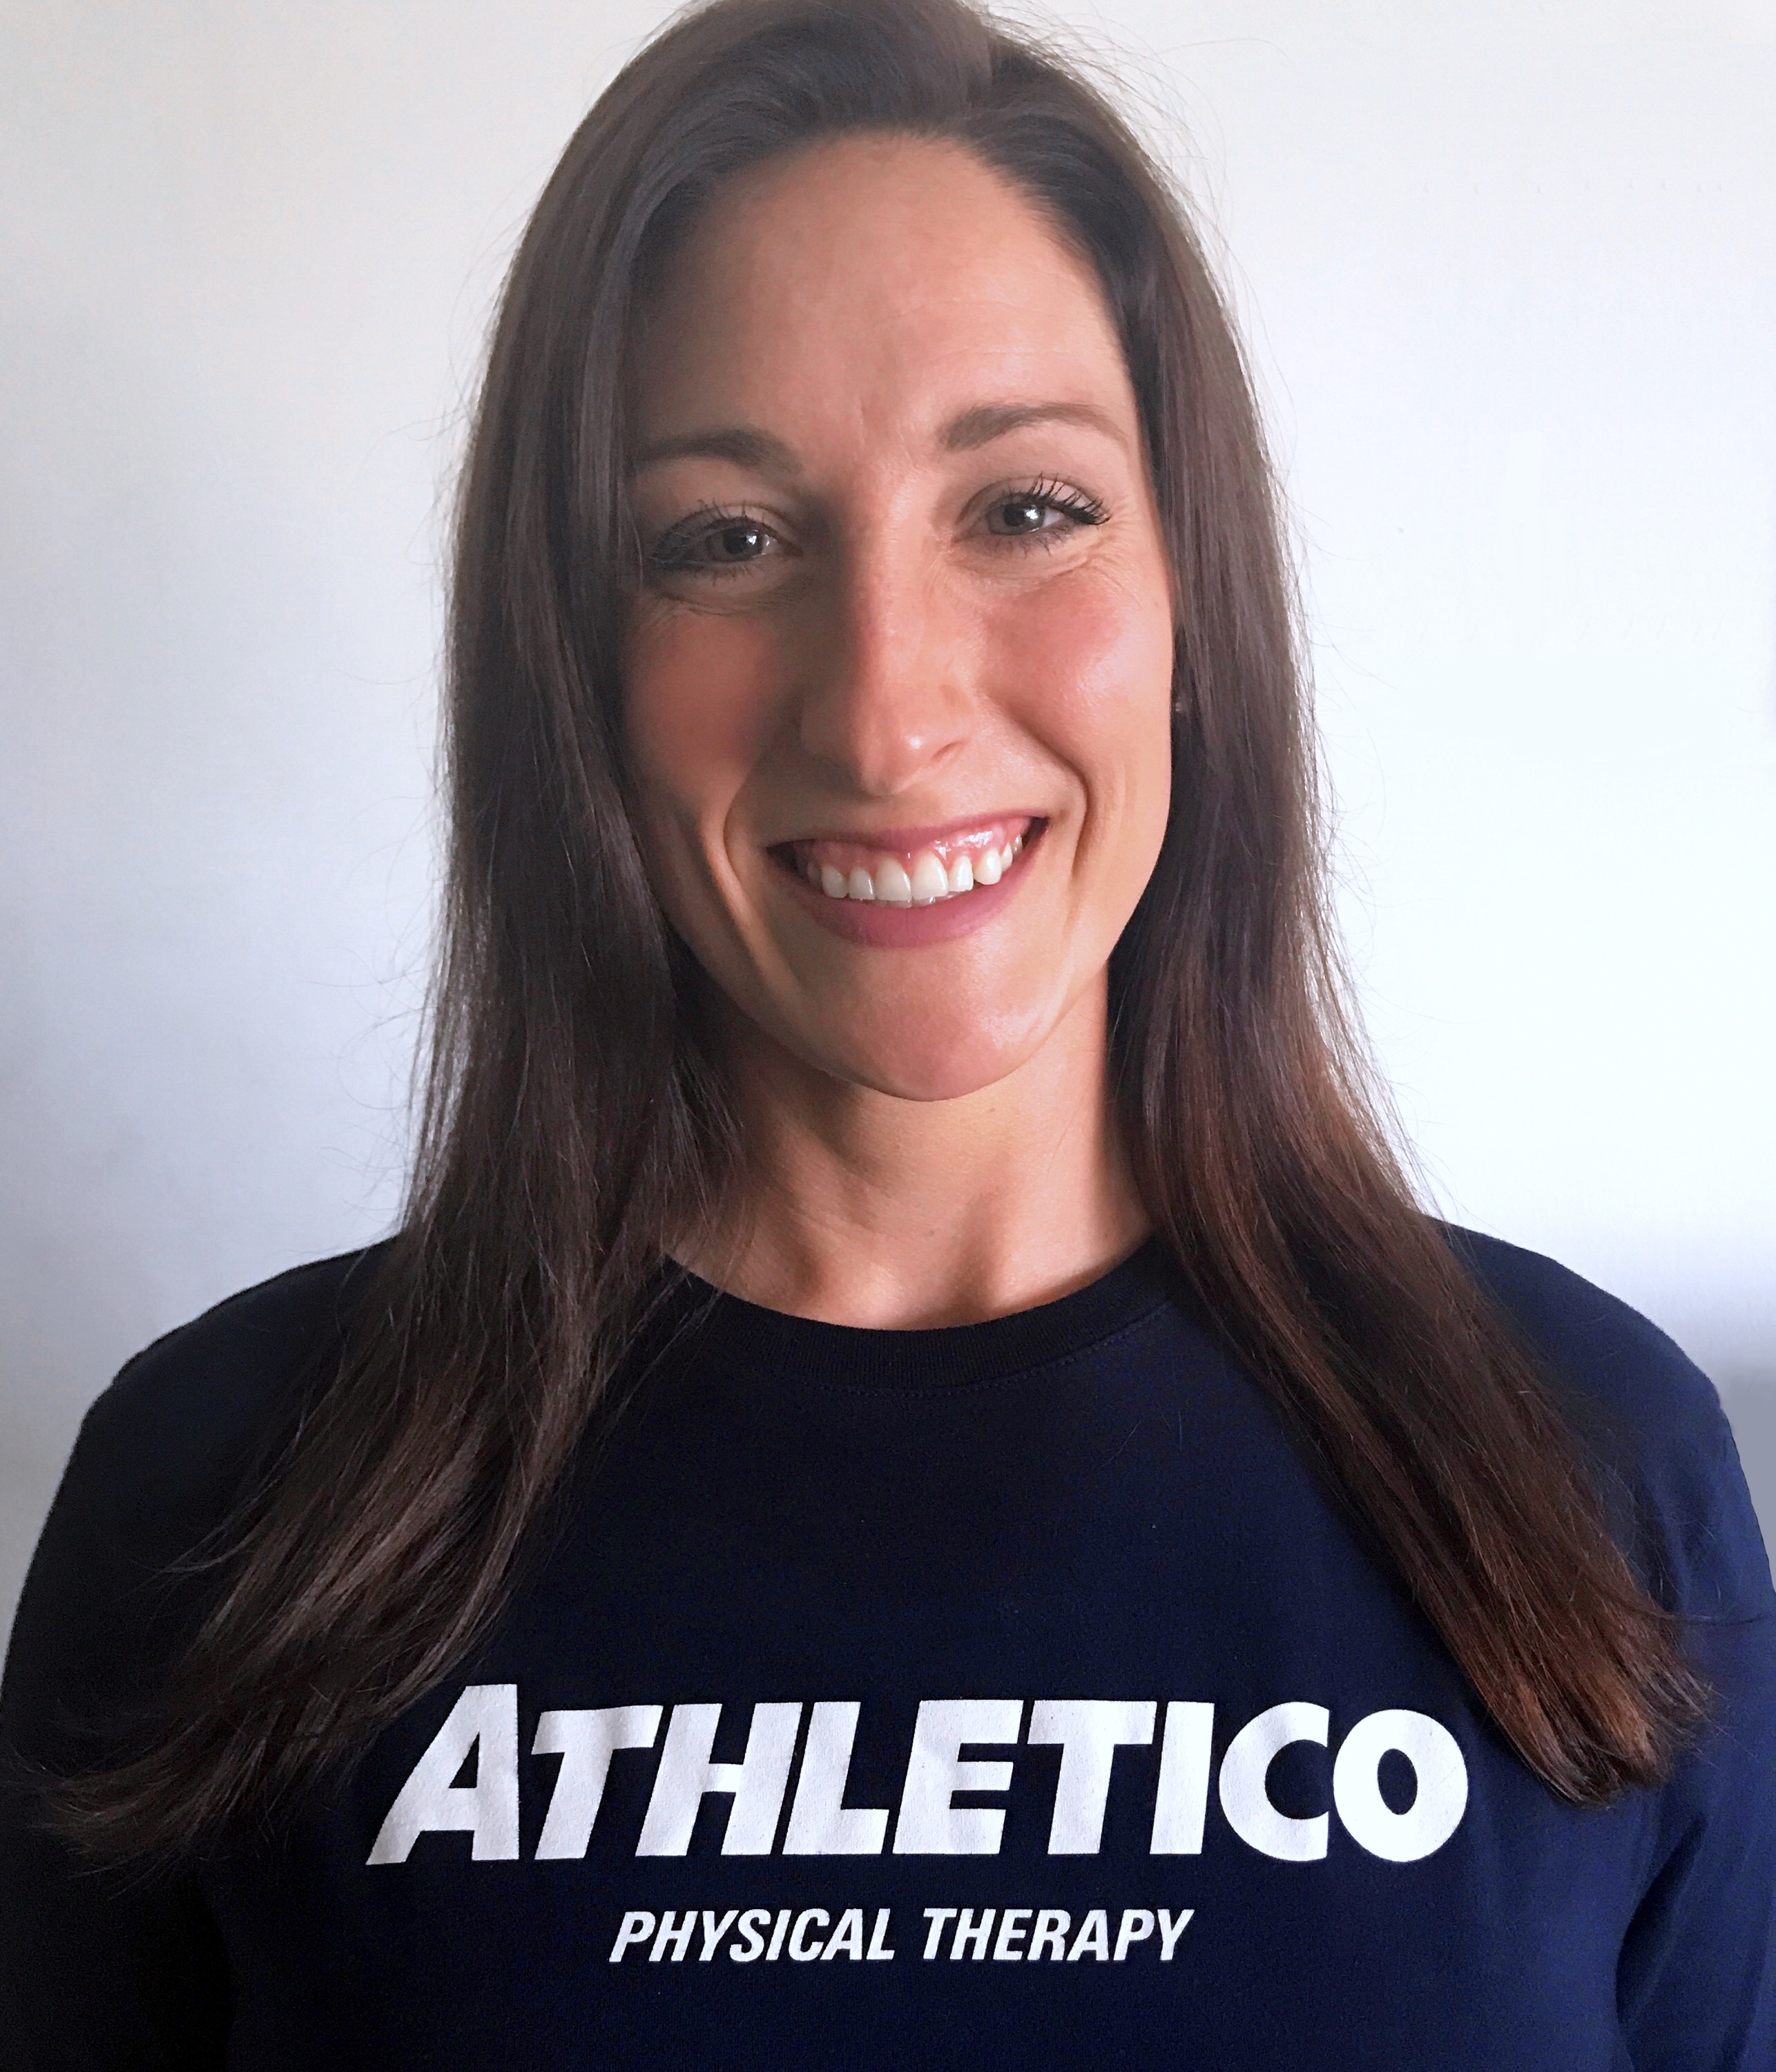 My Name Is Jillian Stapf I Am The Head Athletic Trainer For Great Lakes Volleyball Center Have Bachelors In Kinesiology From California State